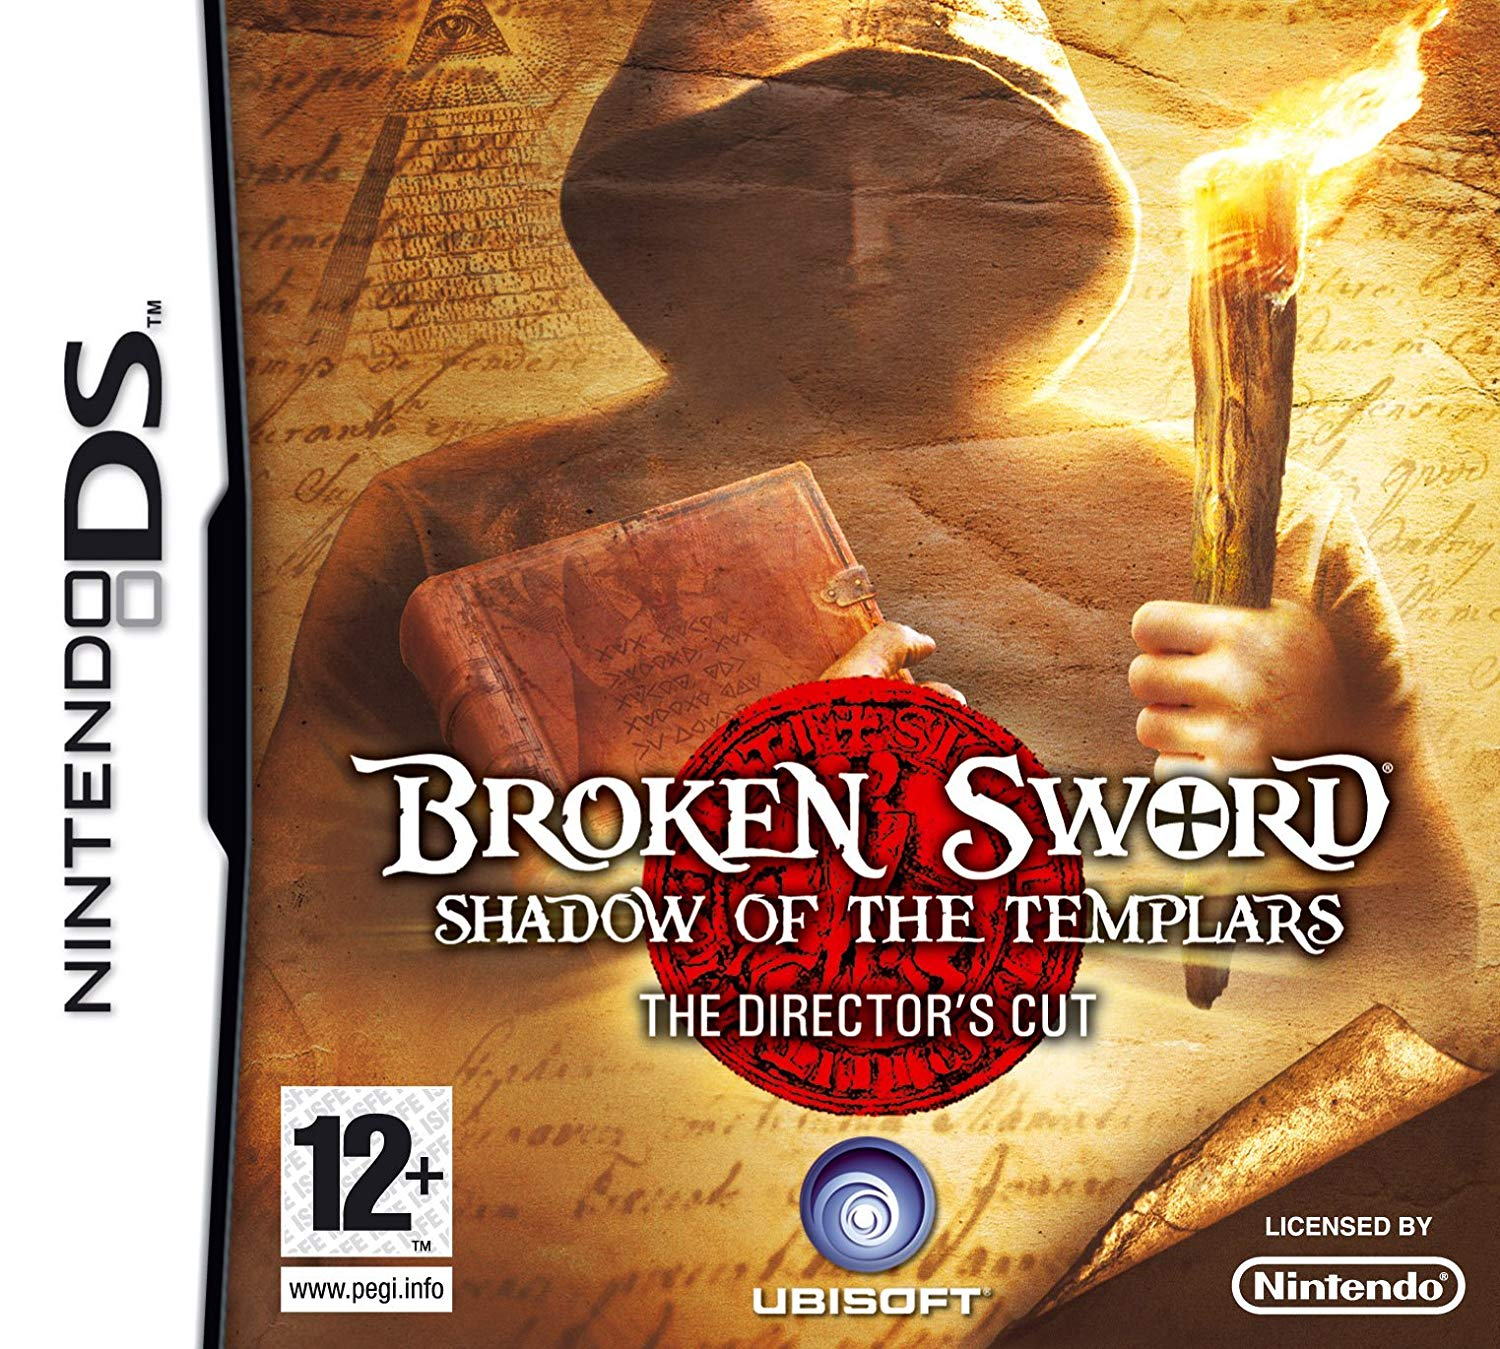 Broken Sword Shadow of the Templars The Directors Cut